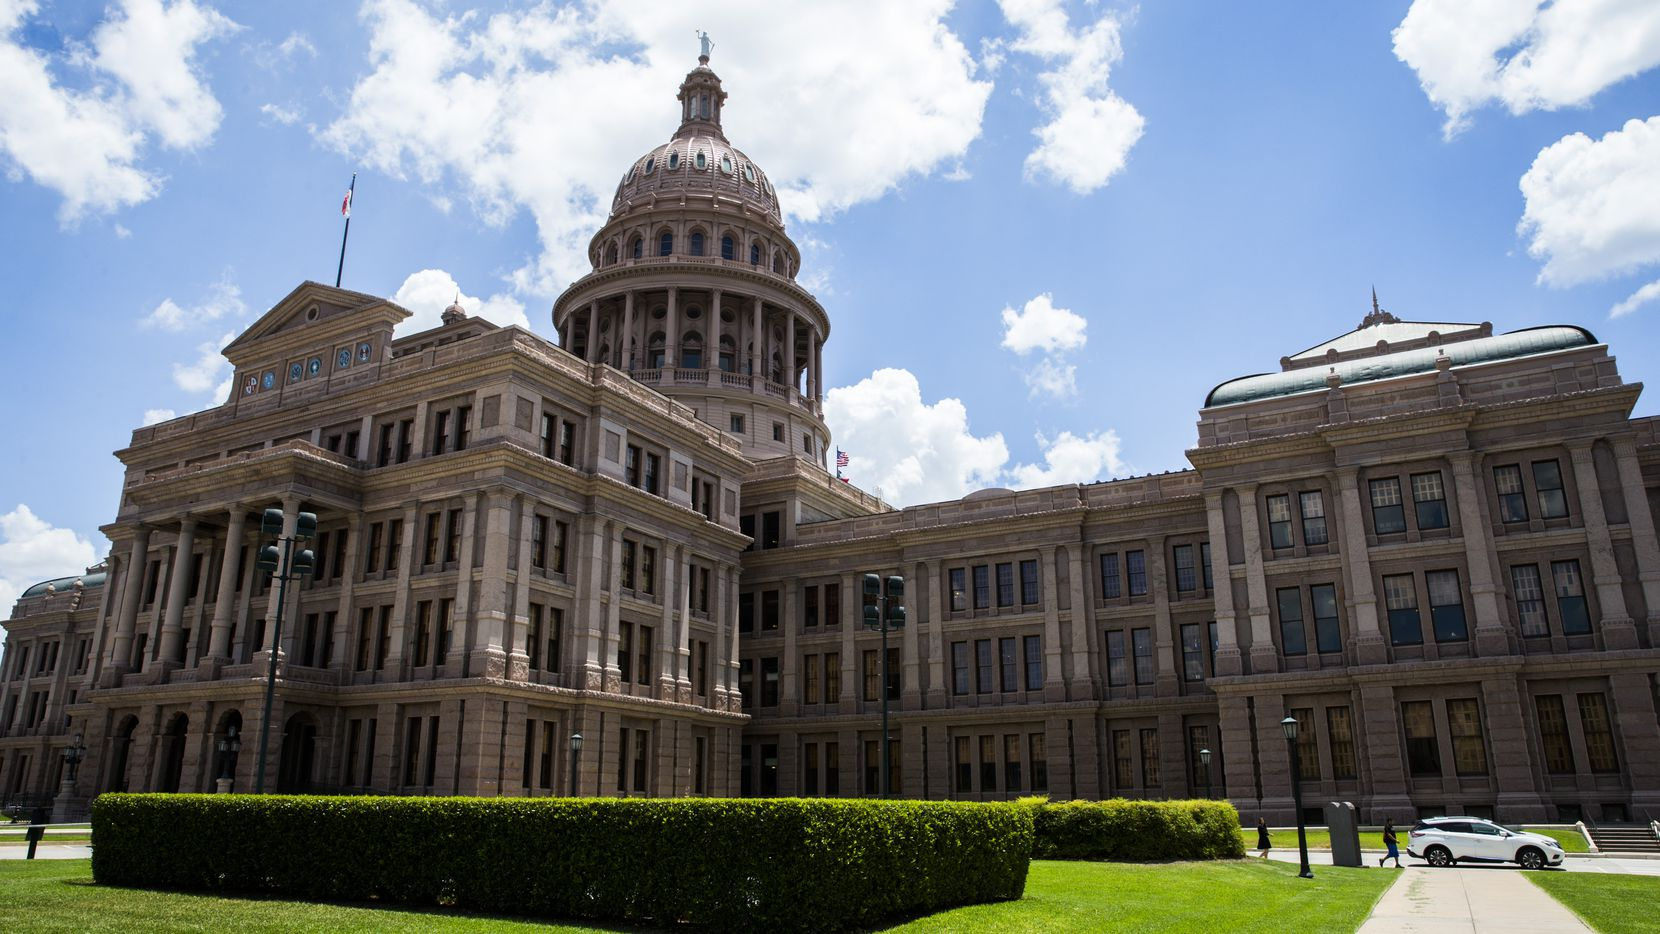 A series of court rulings and attorney general opinions have gutted Texas' once lauded public records law. But a bipartisan fix finally passed both chambers last week and heads now to Gov. Greg Abbott's desk. (2017 File Photo by Ashley Landis/The Dallas Morning News)